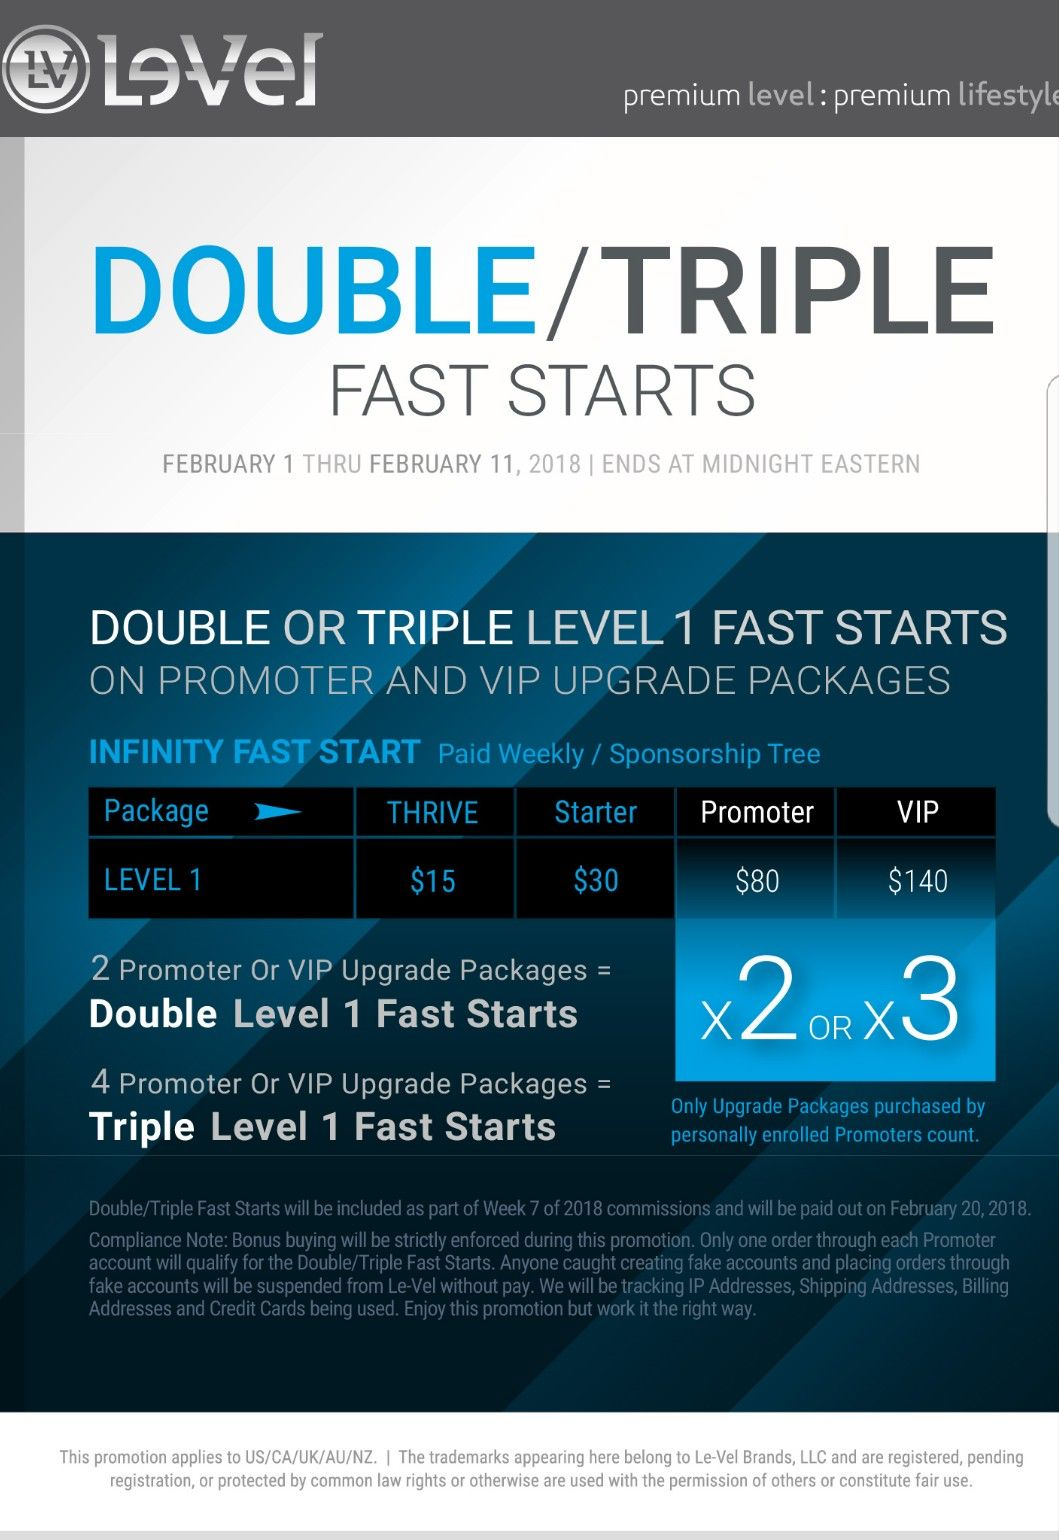 Earn Double Or Triple Commissions When Your Customers Purchase A